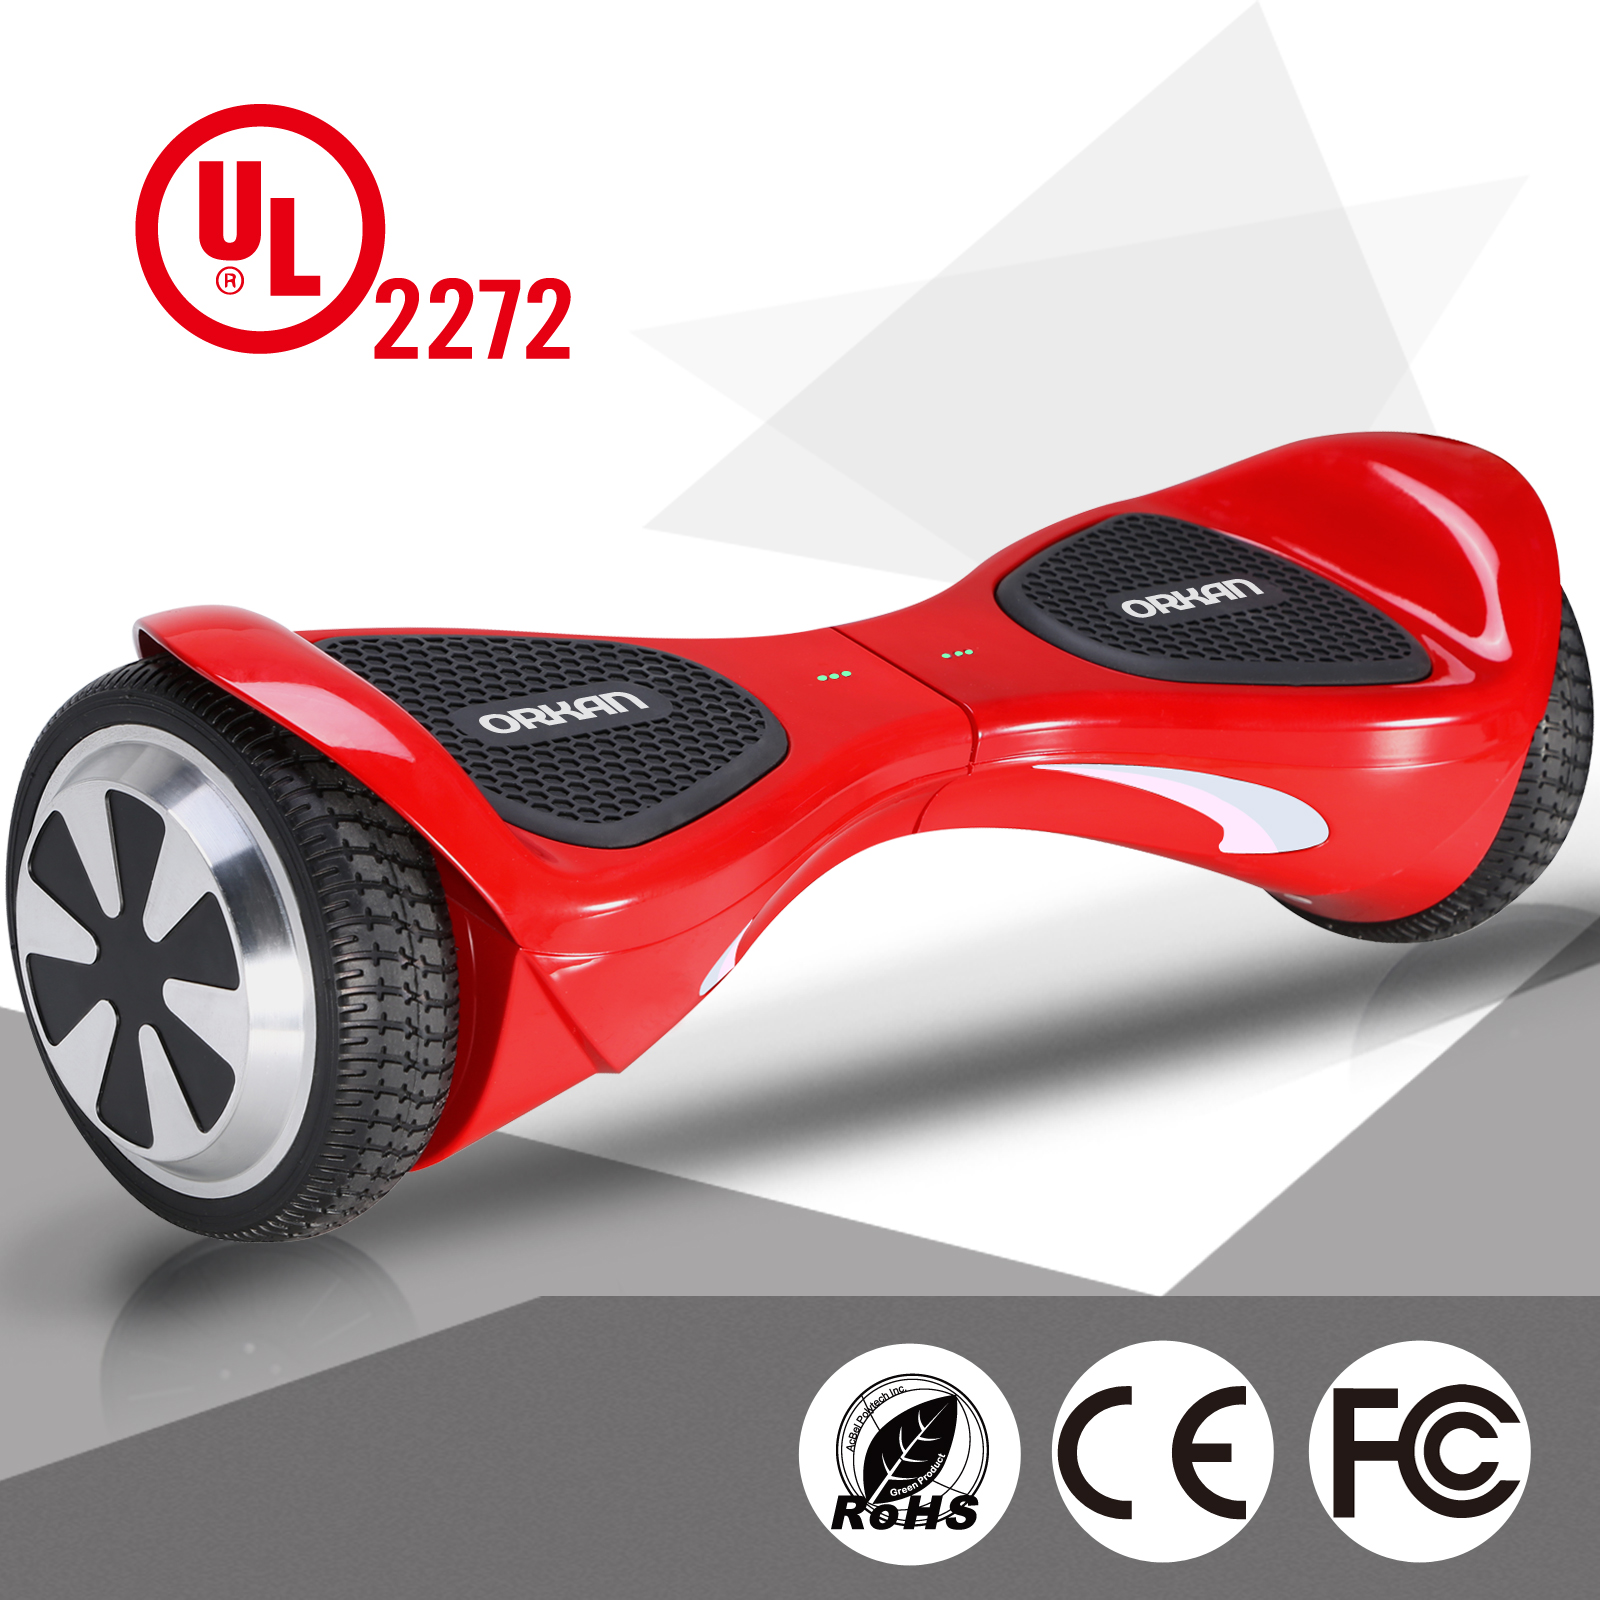 ul2272 approved 6 5 electric self balancing smart scooter. Black Bedroom Furniture Sets. Home Design Ideas